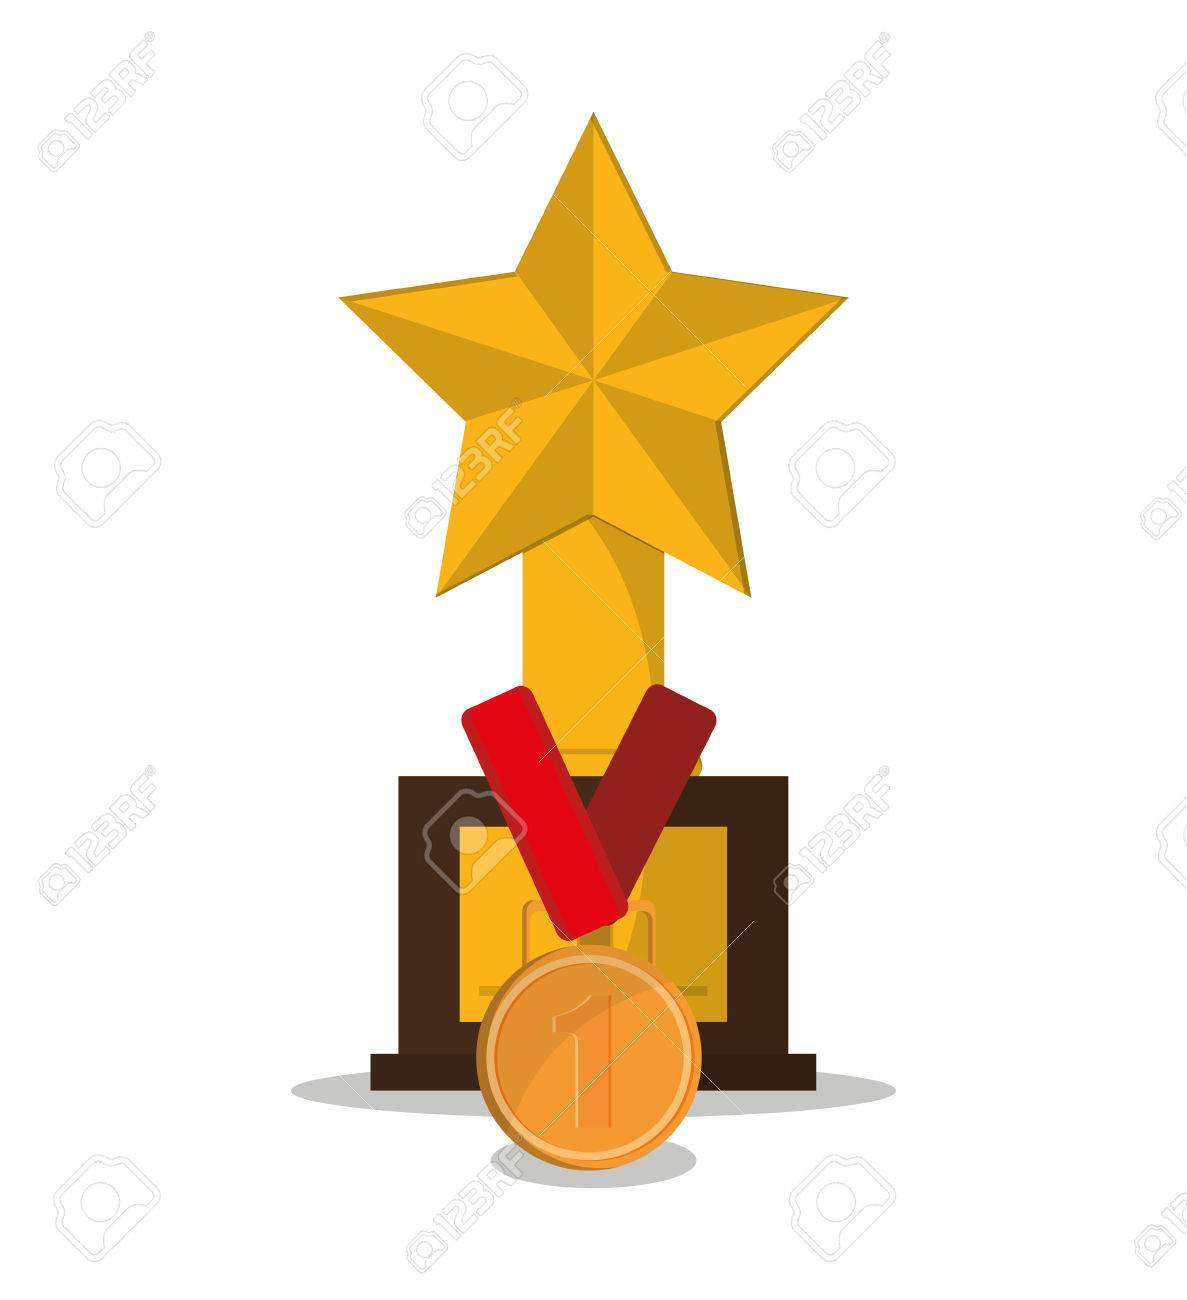 Gold Trophy Medal And Star Icon Champions League Winner Success Theme Colorful Design